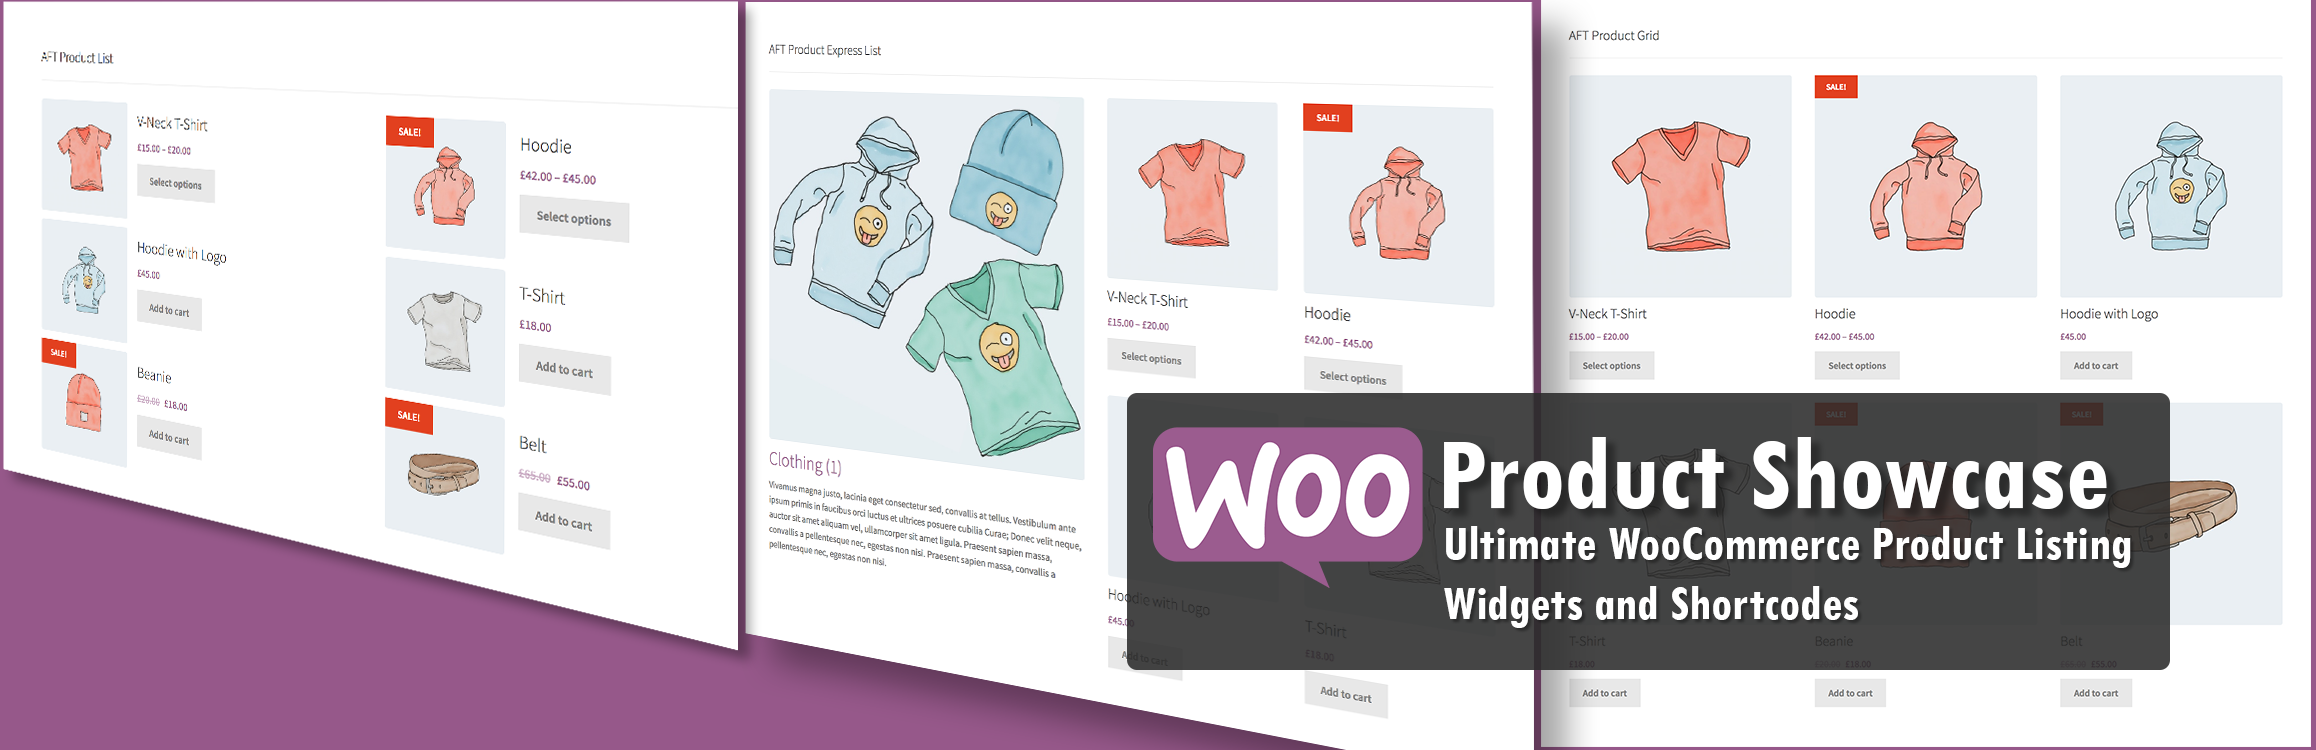 Woo Product Showcase